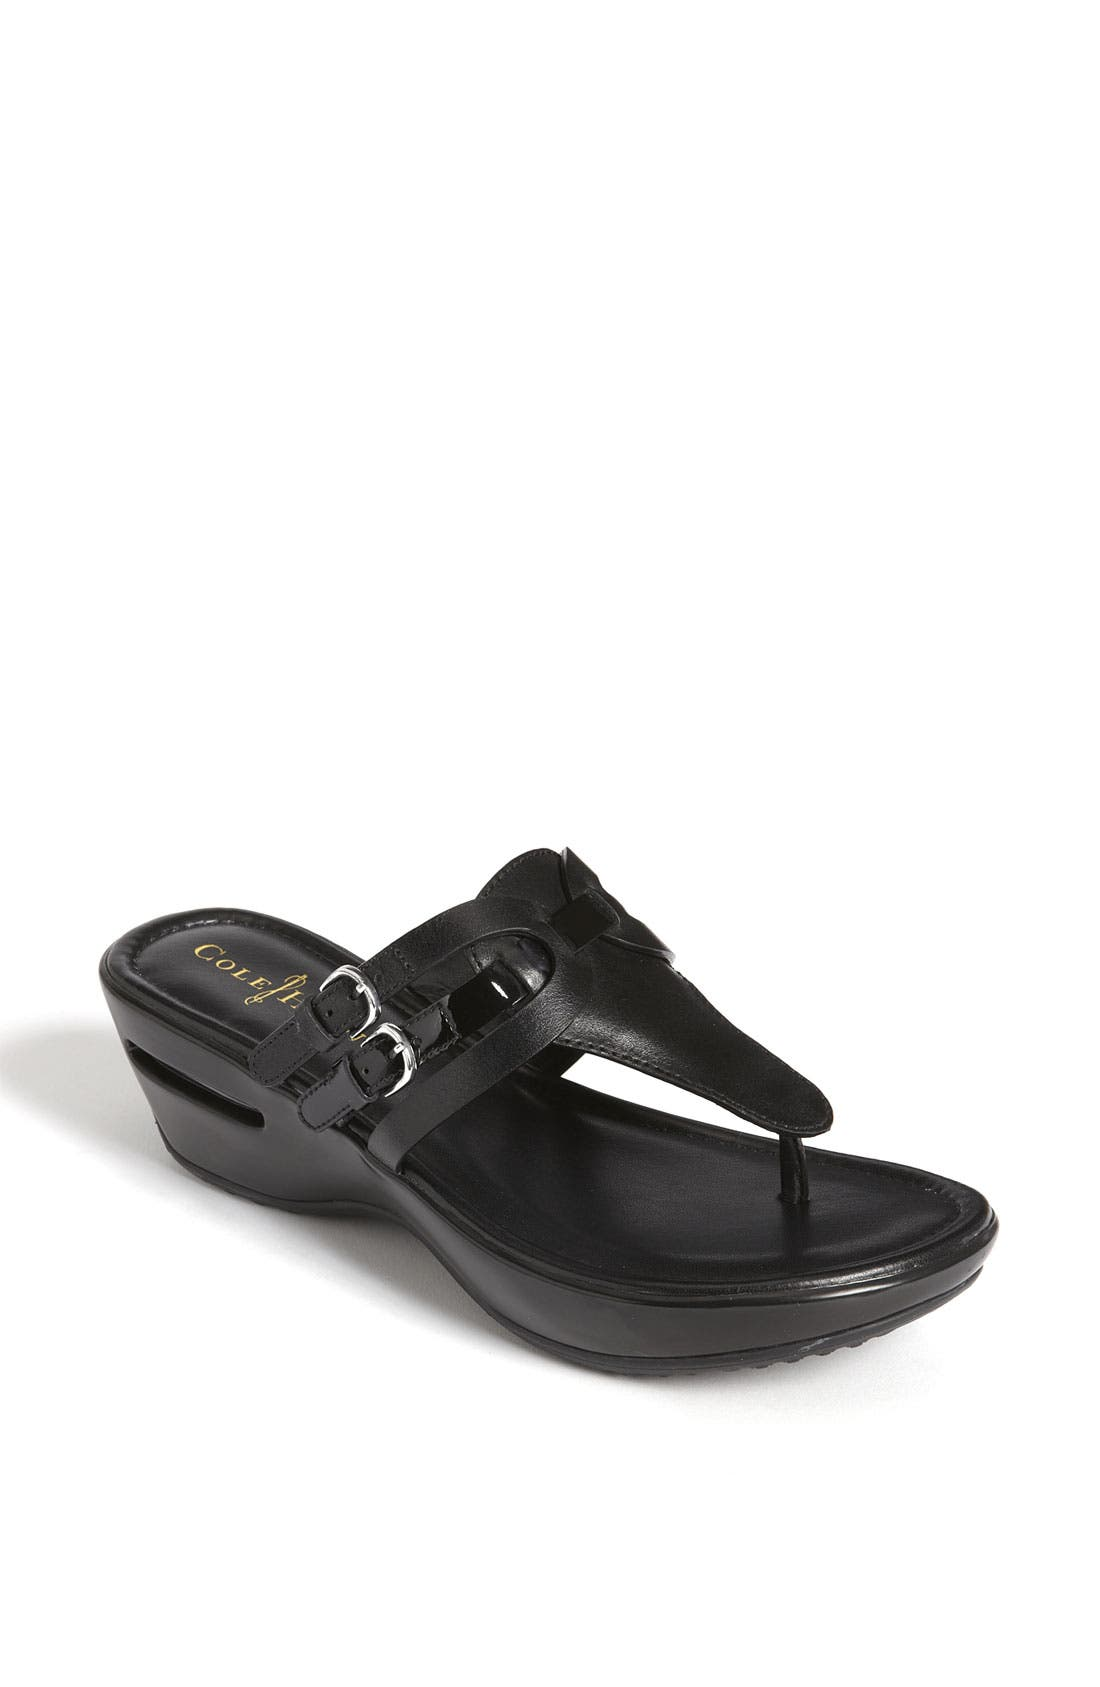 Alternate Image 1 Selected - Cole Haan 'Air Melisa' Thong Sandal (Exclusive)